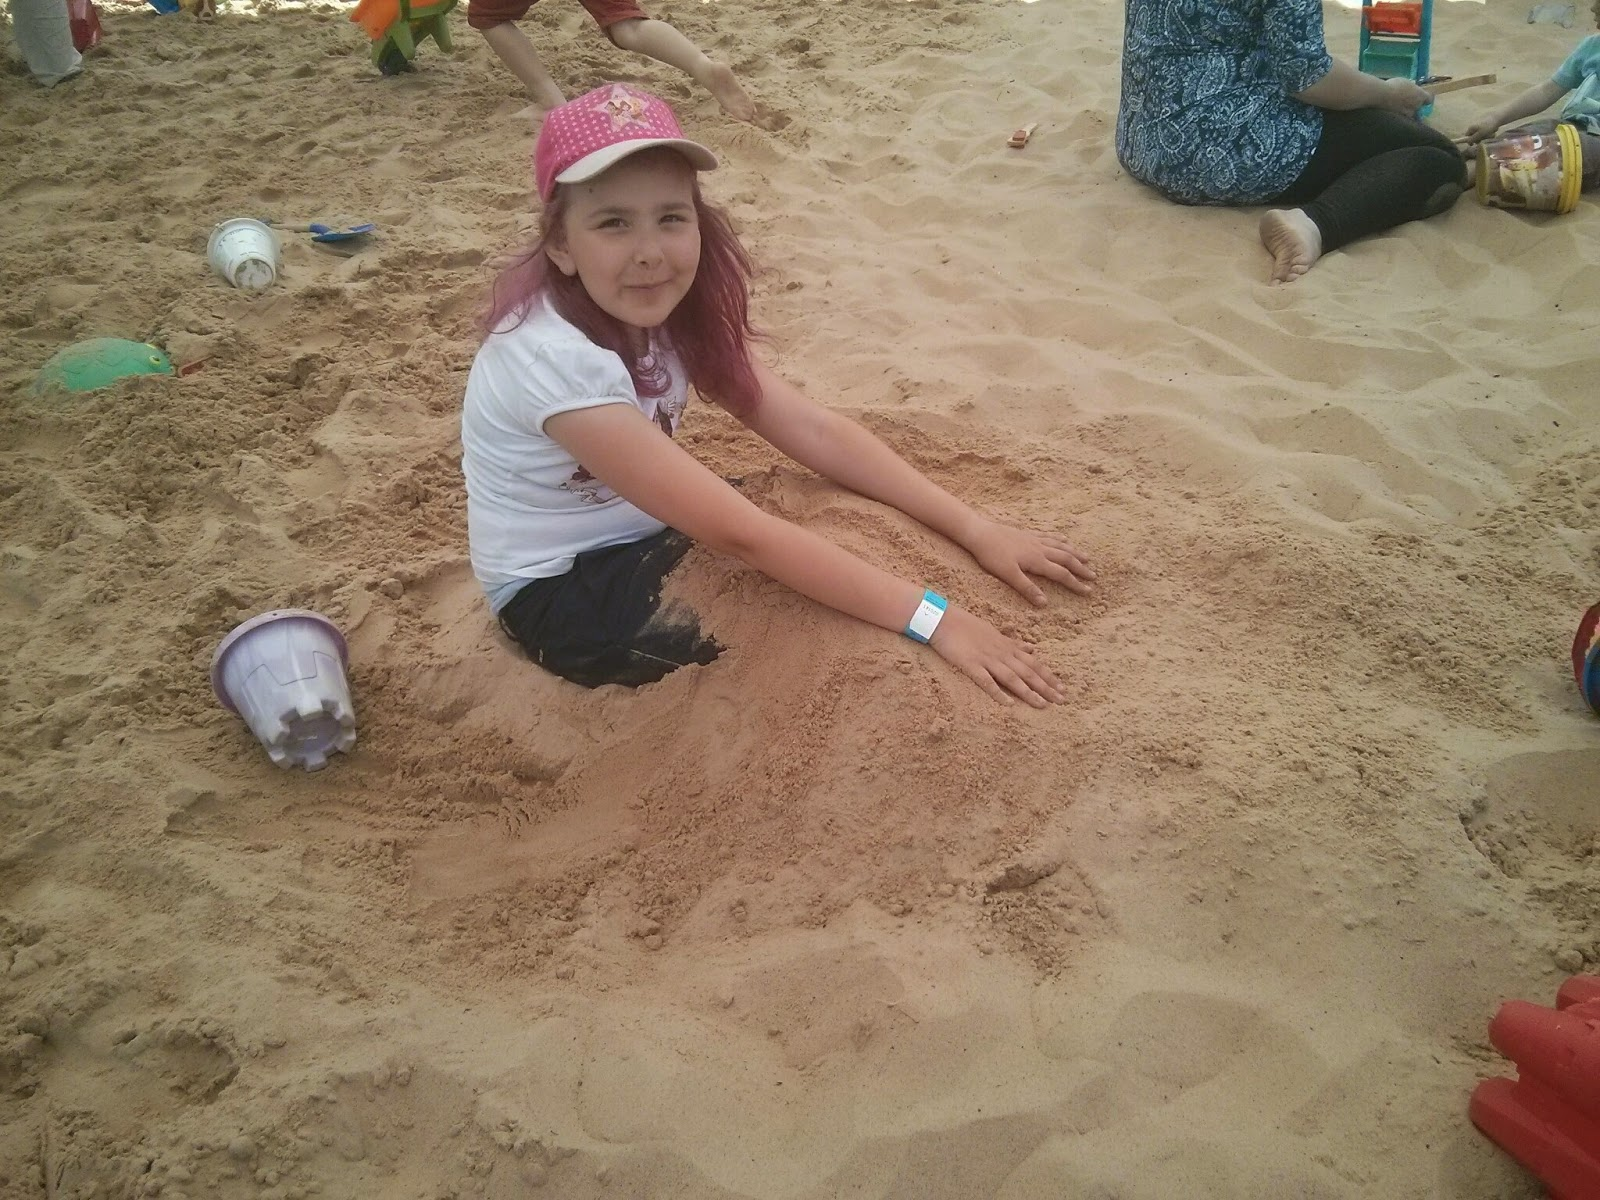 Top Ender burying her legs in the sand